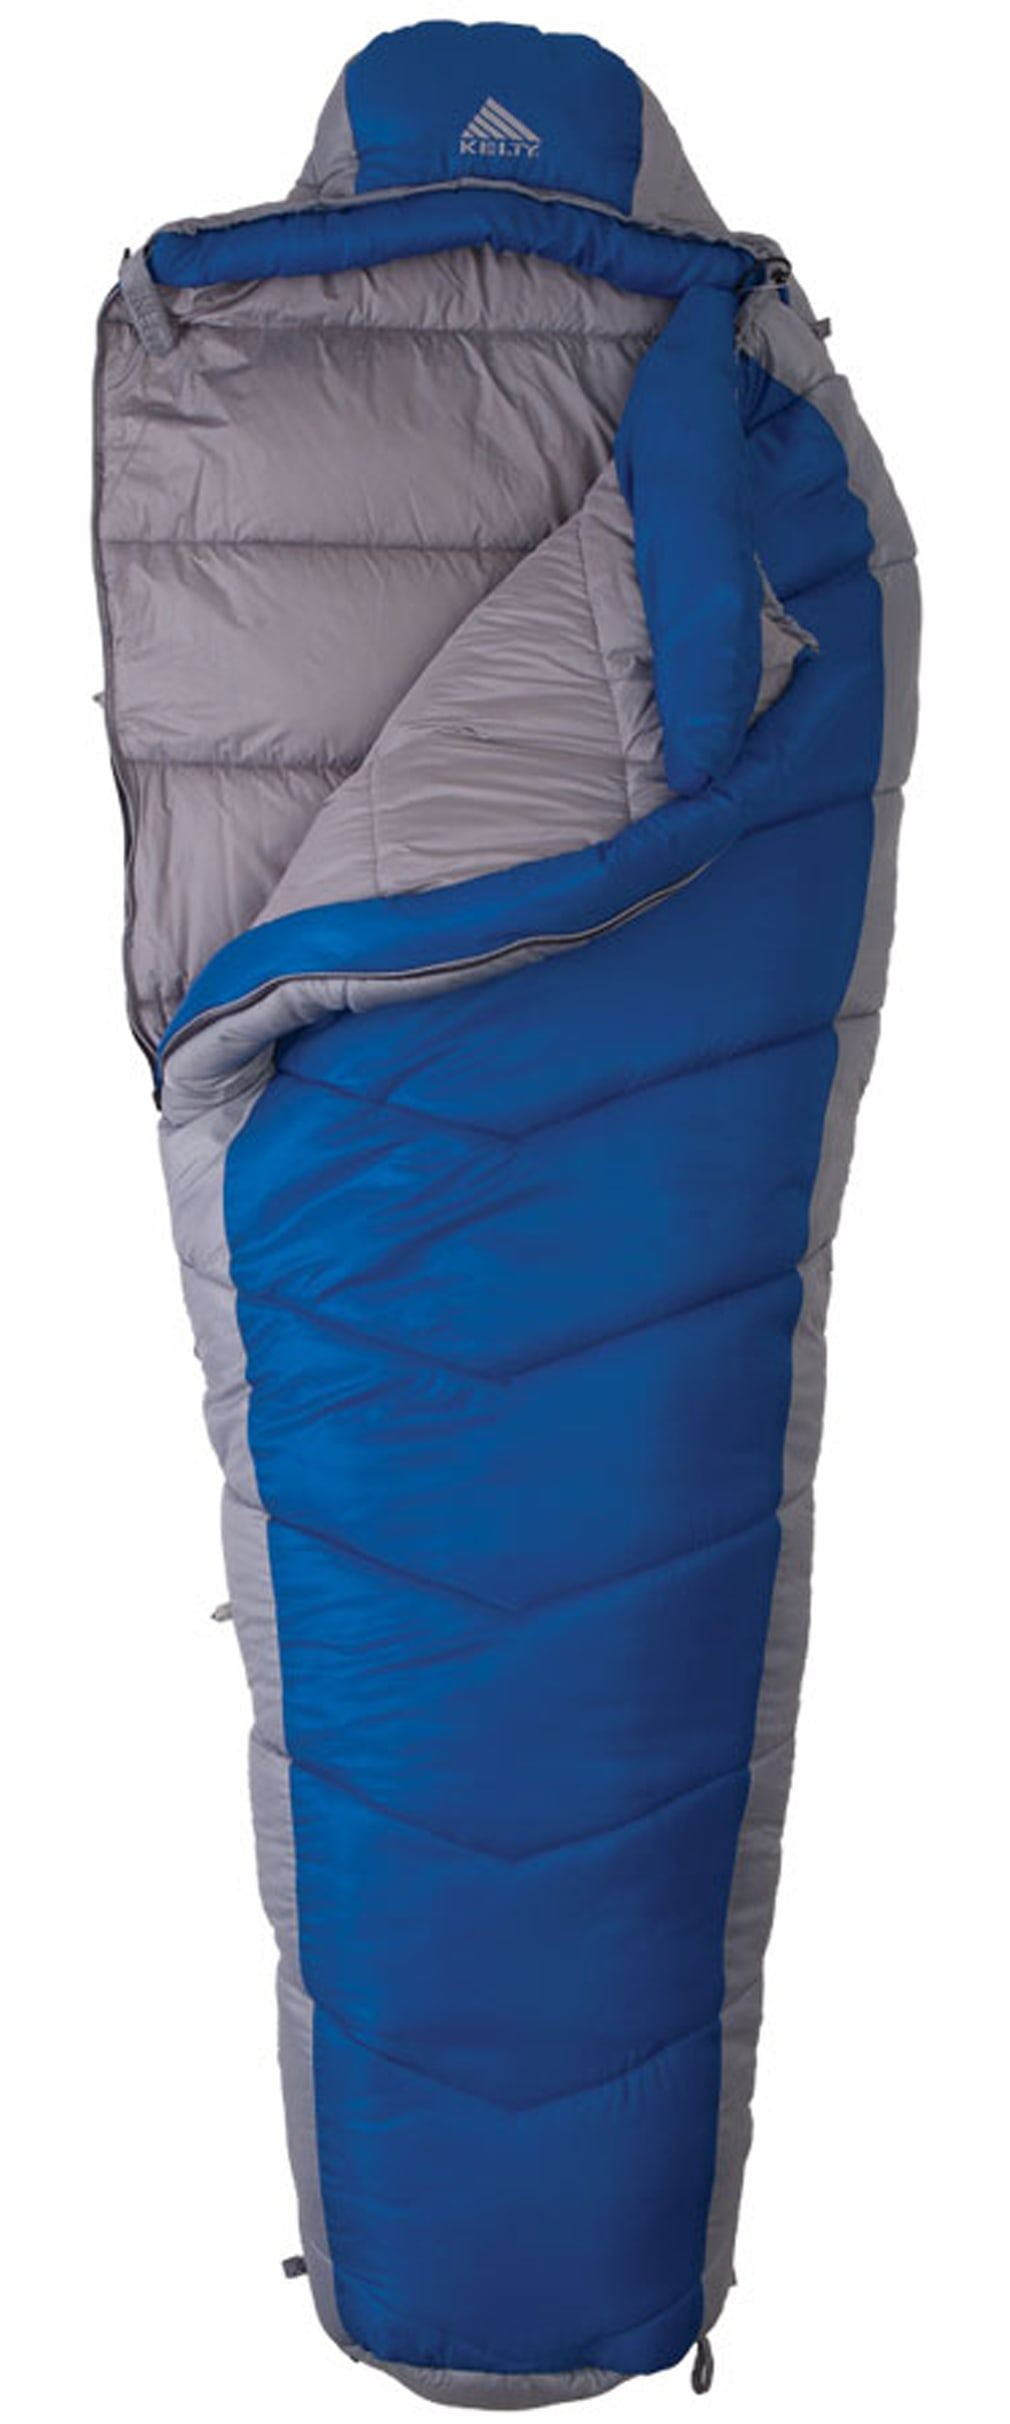 Shop for Kelty Light Year XP 20 Degree Long Sleeping Bag